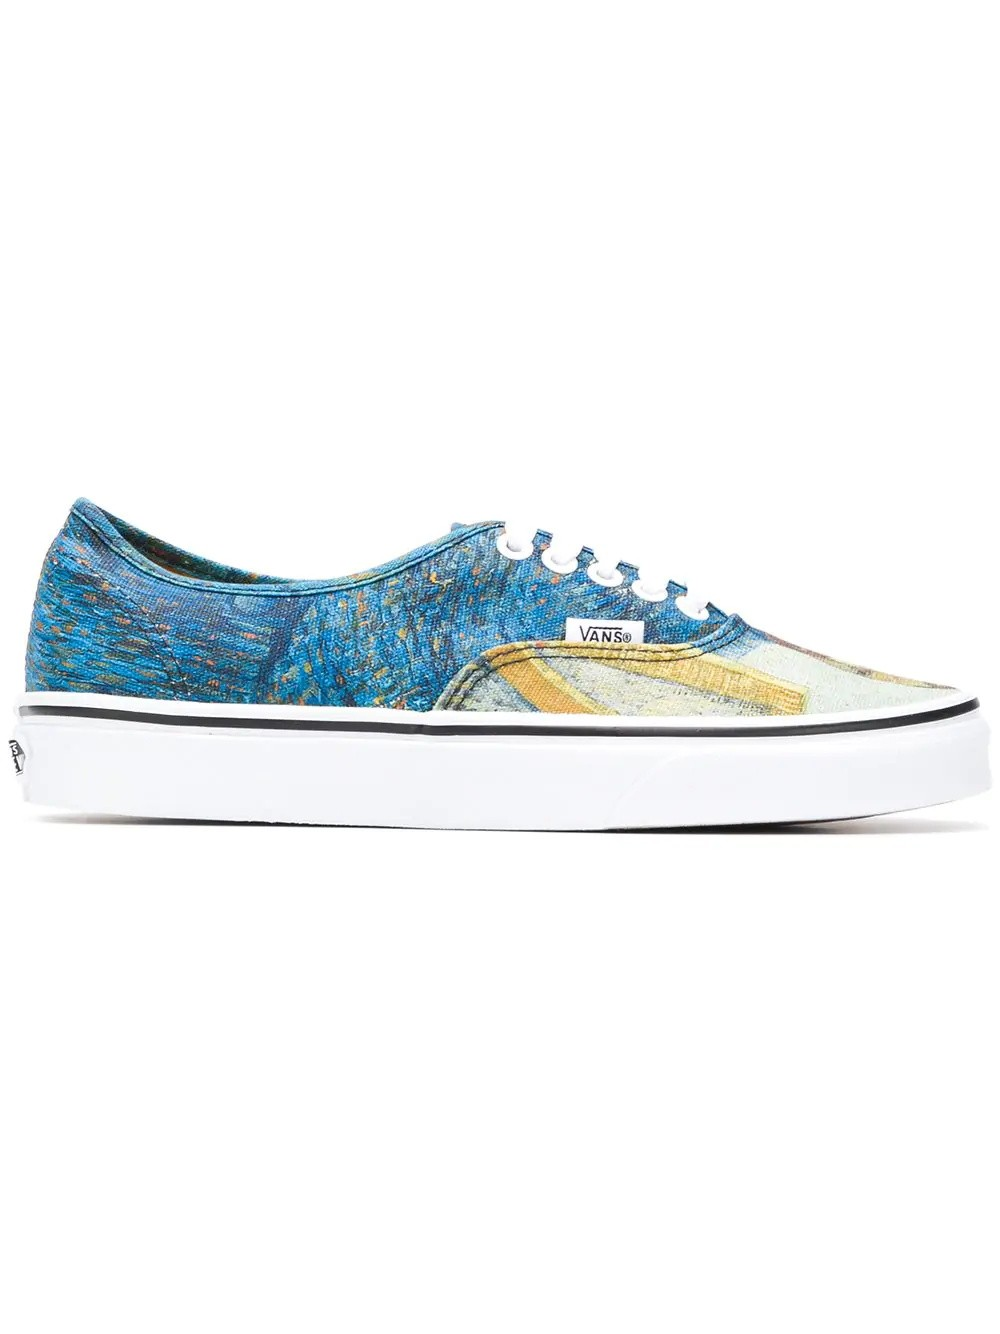 Vans Authentique (Vincent Van Gogh) Self Portrait/Blanche VN0A38EMU5X